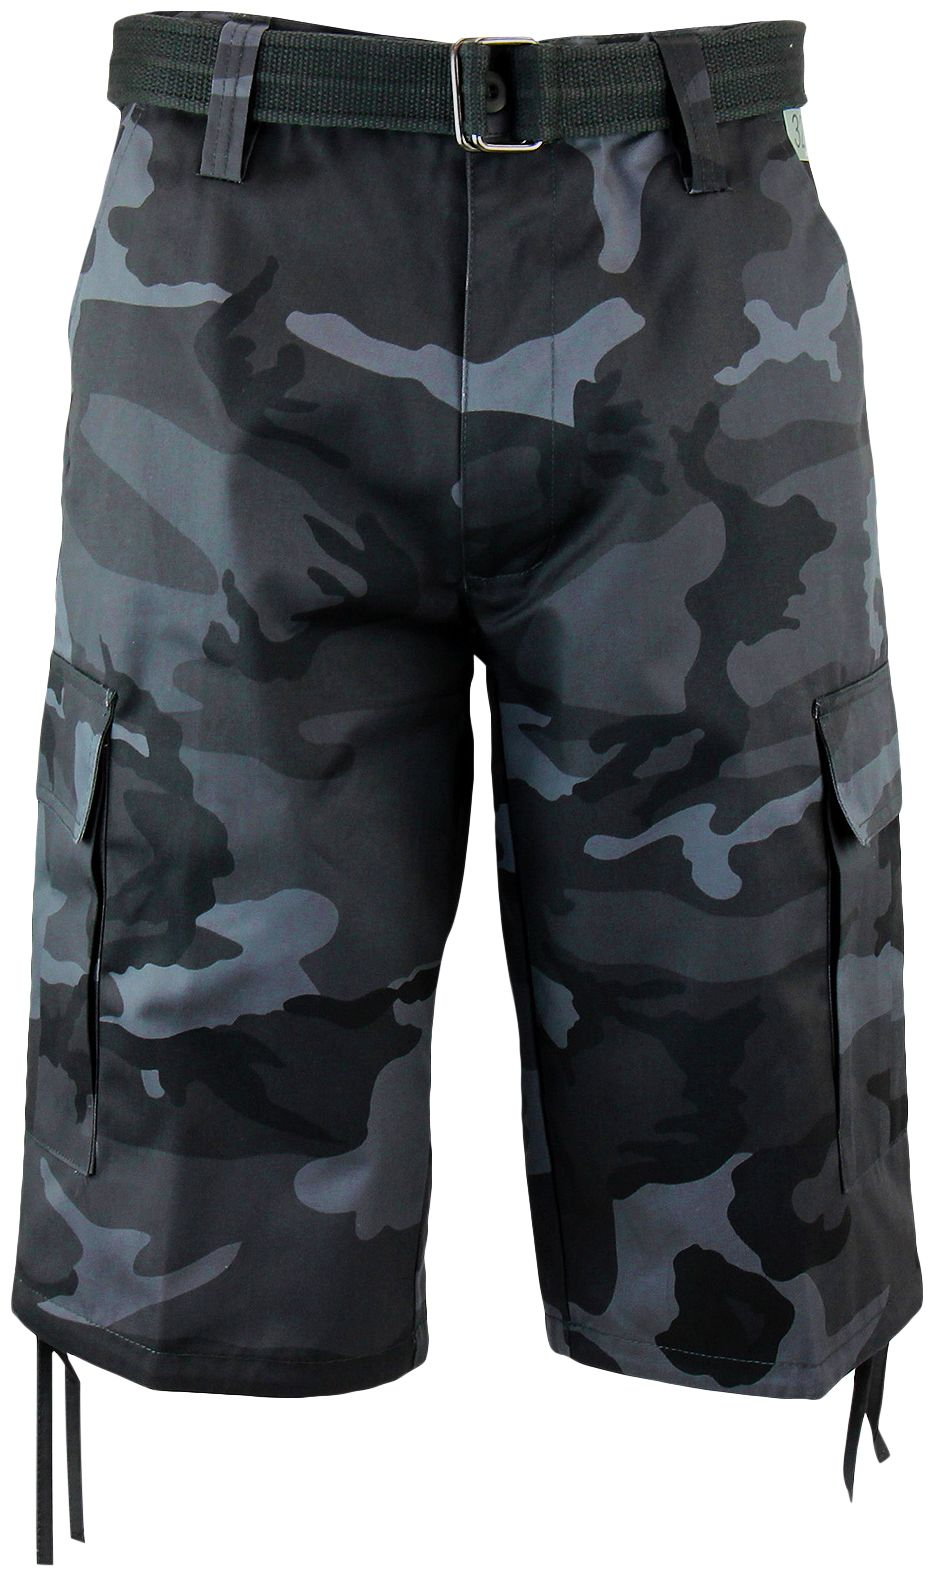 ea2cfd14eb Comfortable and affordable cargo shorts from Regal Wear. Available in  camouflage style in many cool